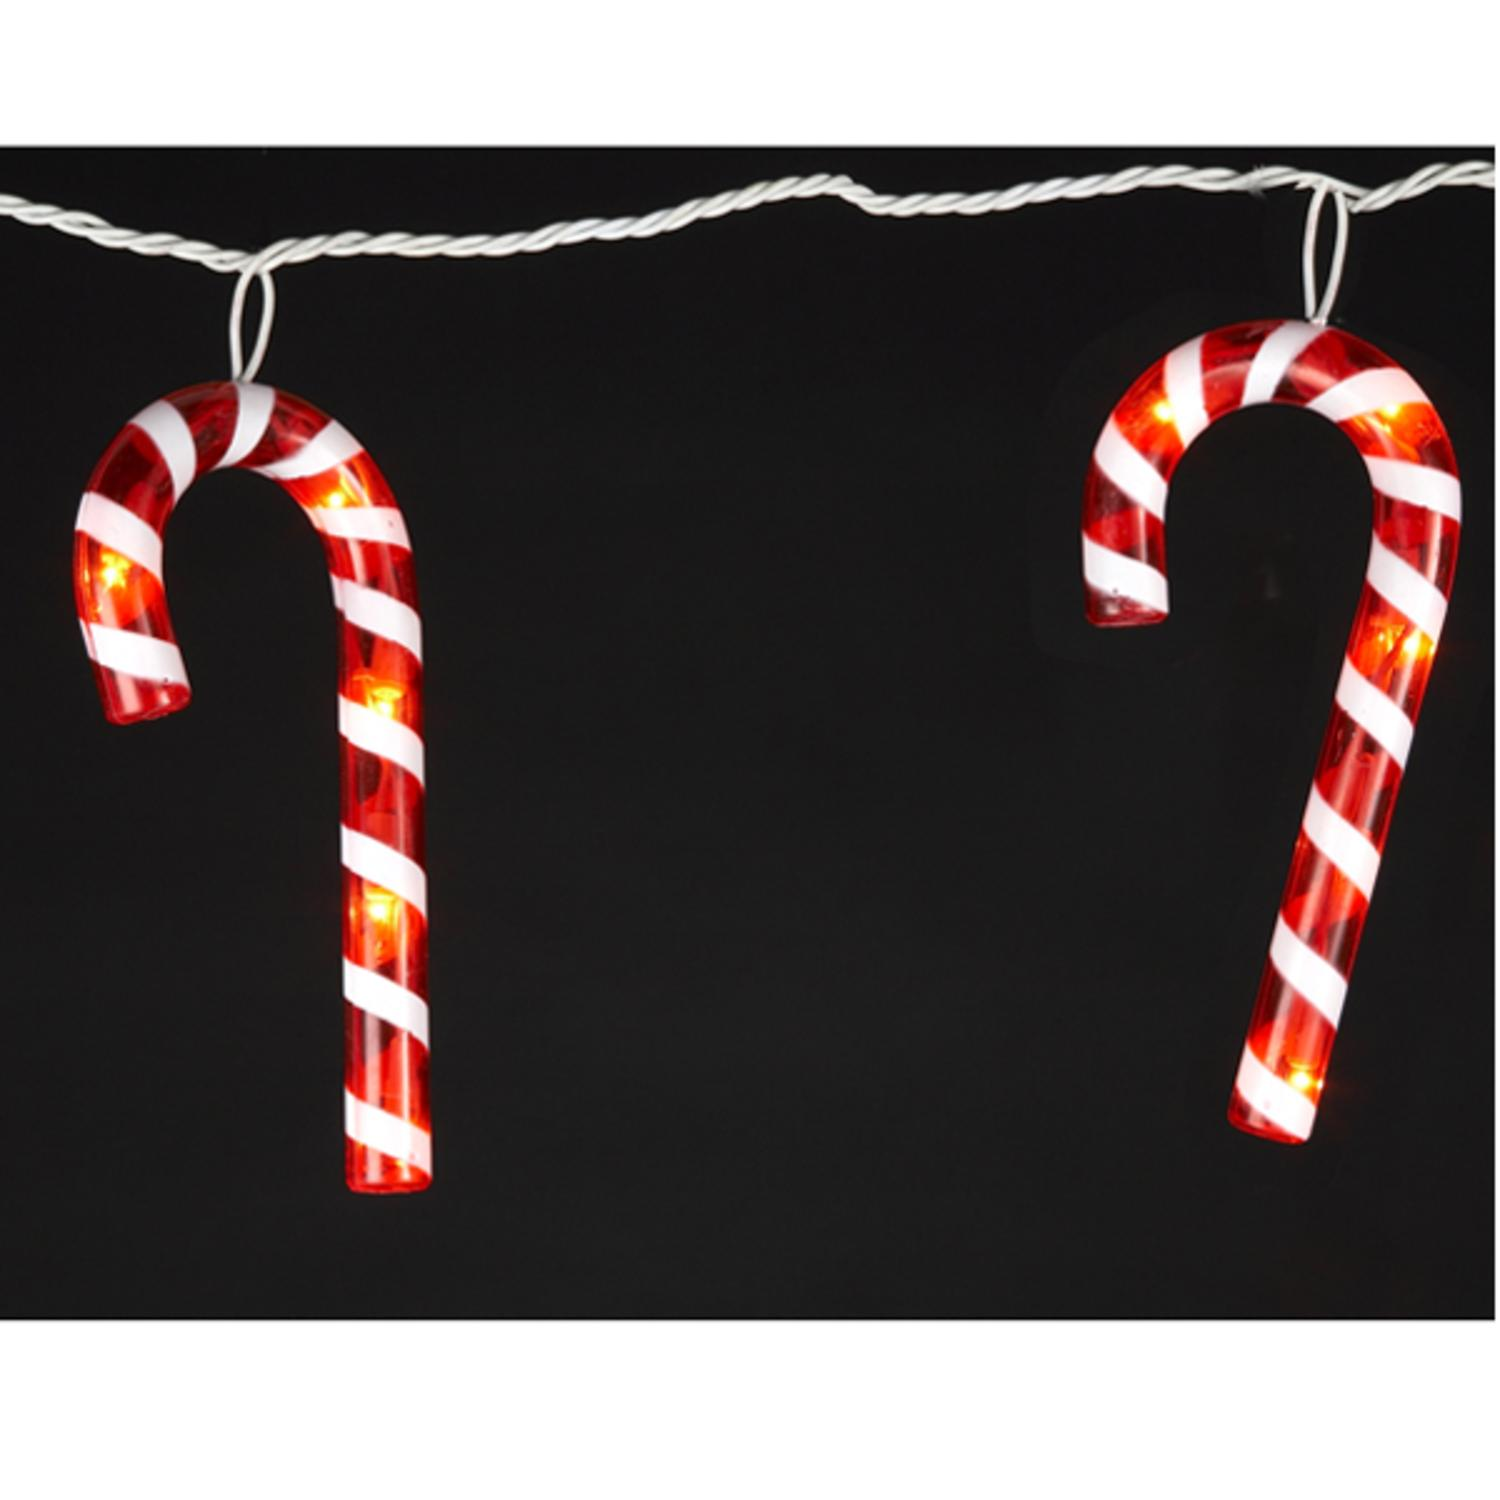 Set of 7 outdoor red and white candy cane icicle christmas lights set of 7 outdoor red and white candy cane icicle christmas lights white wire walmart aloadofball Images